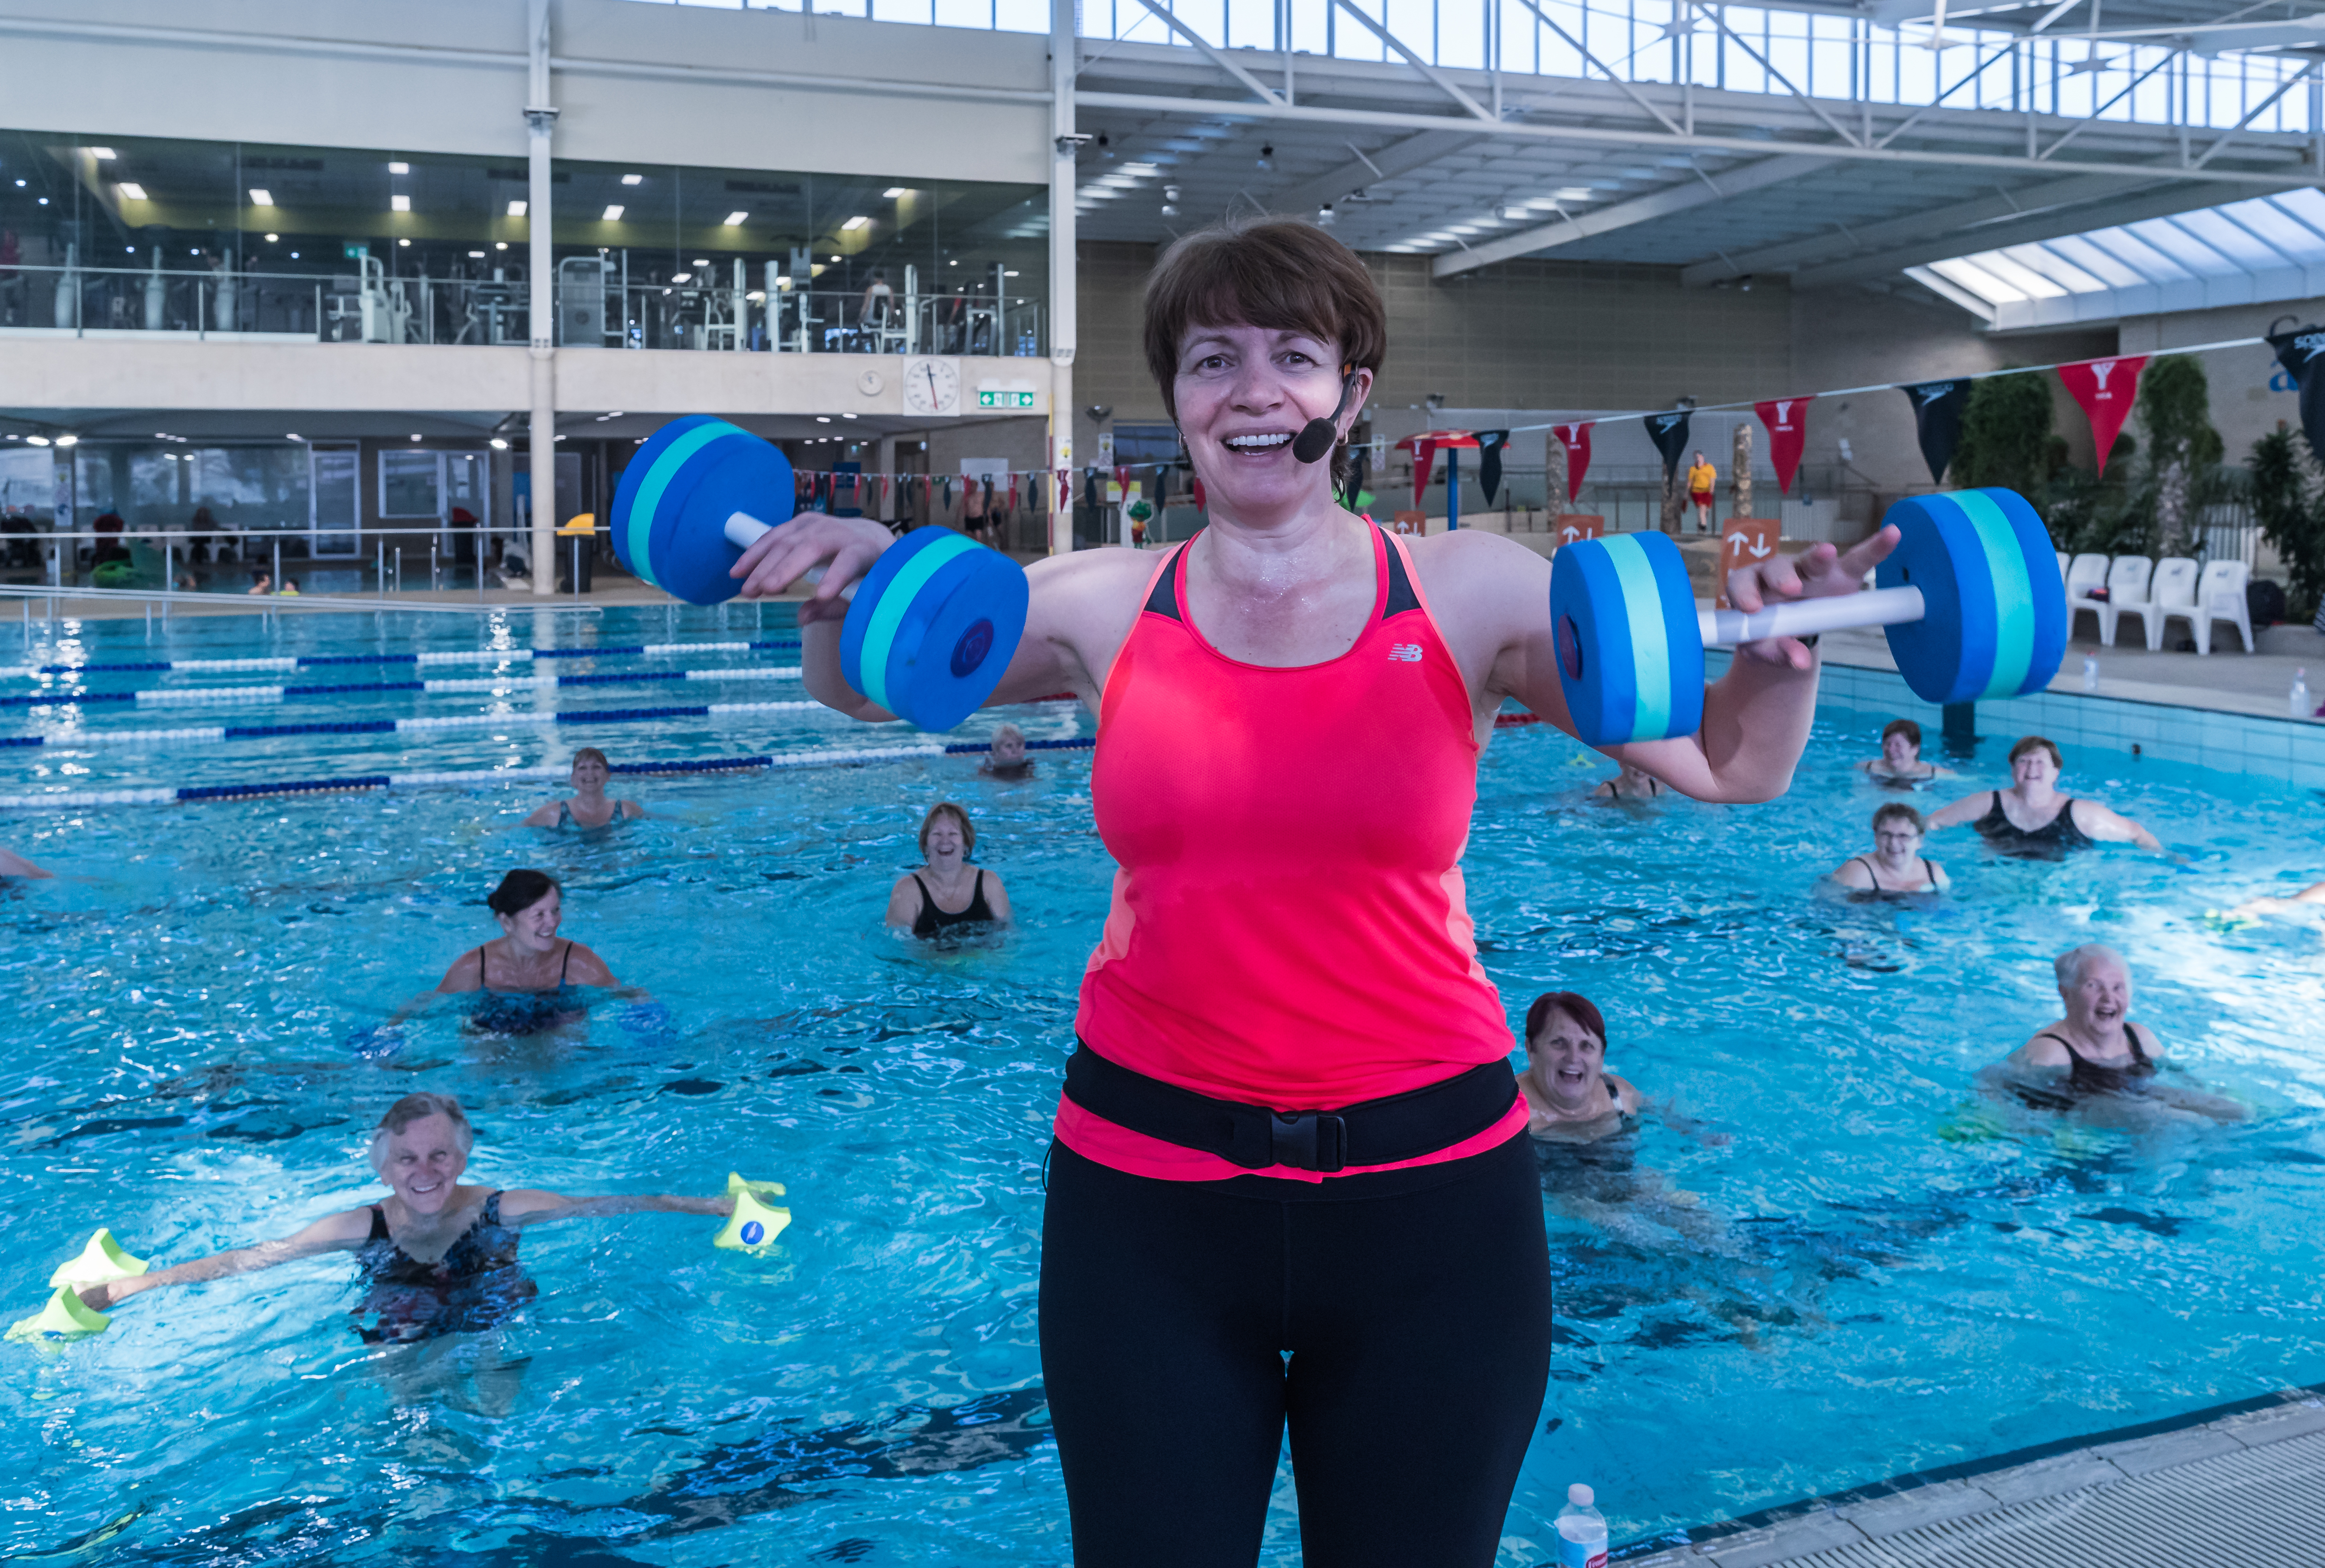 Aqua aerobics instructor demonstrating exercise in front of class